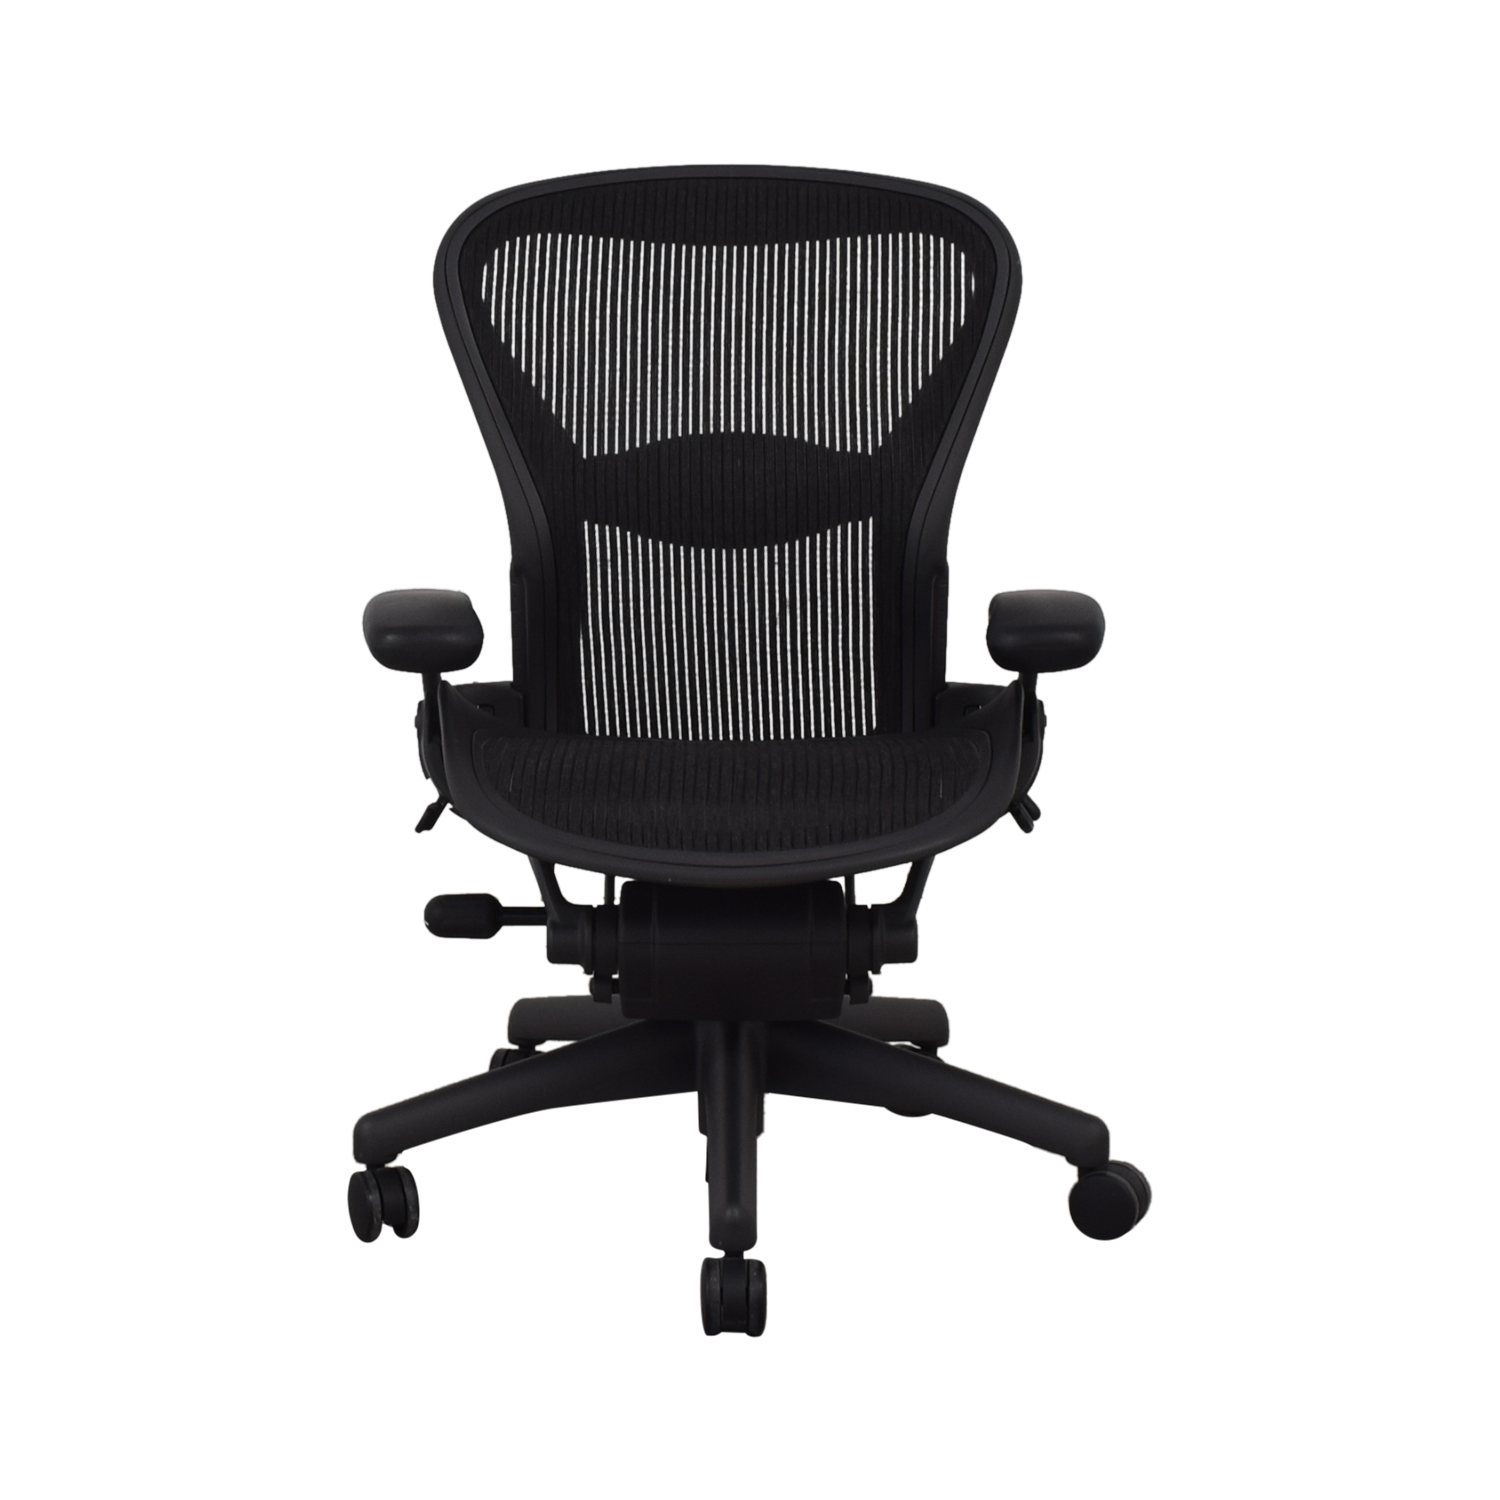 Herman Miller Herman Miller Aeron Medium Classic Size B Office Chair for sale